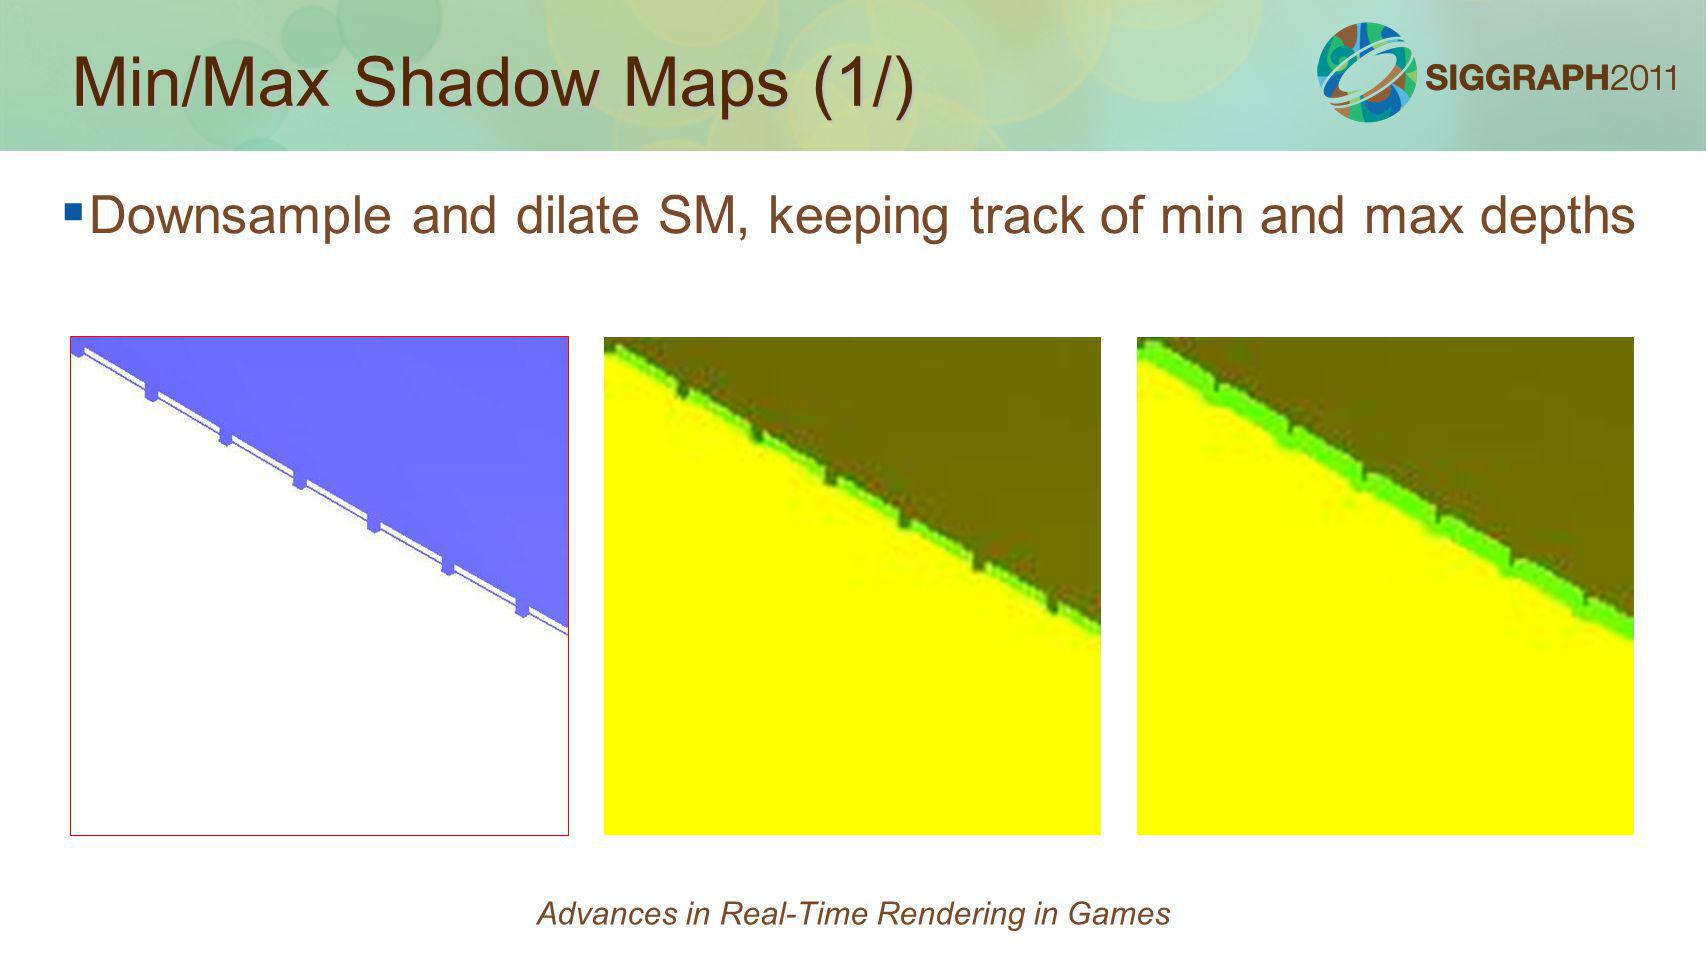 Min/Max Shadow Maps (1/) Downsample and dilate SM, keeping track of min and max depths Advances in Real-Time Rendering in Games